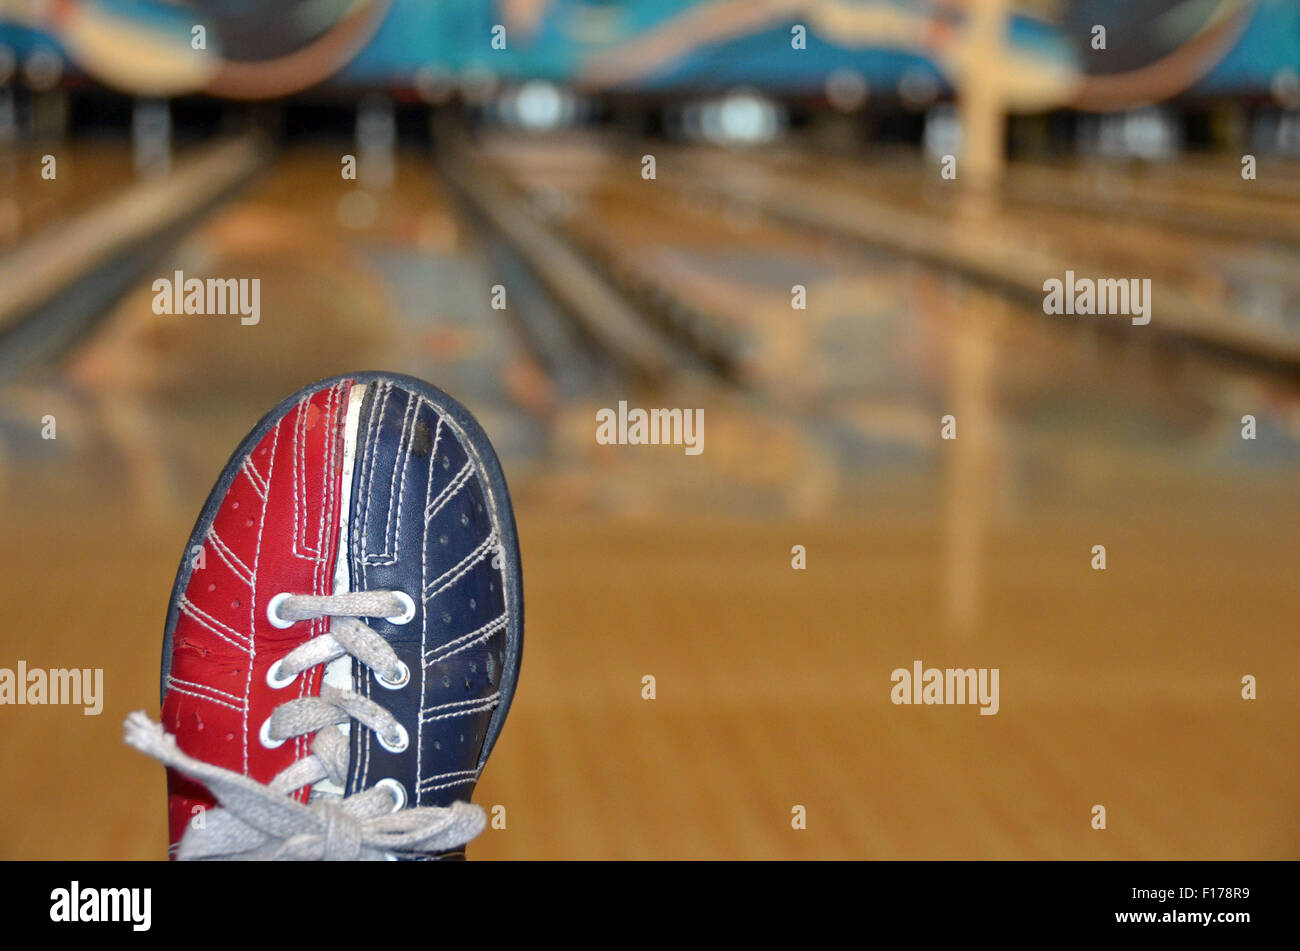 Red and blue bowling shoe with blurred bowling alley background. - Stock Image